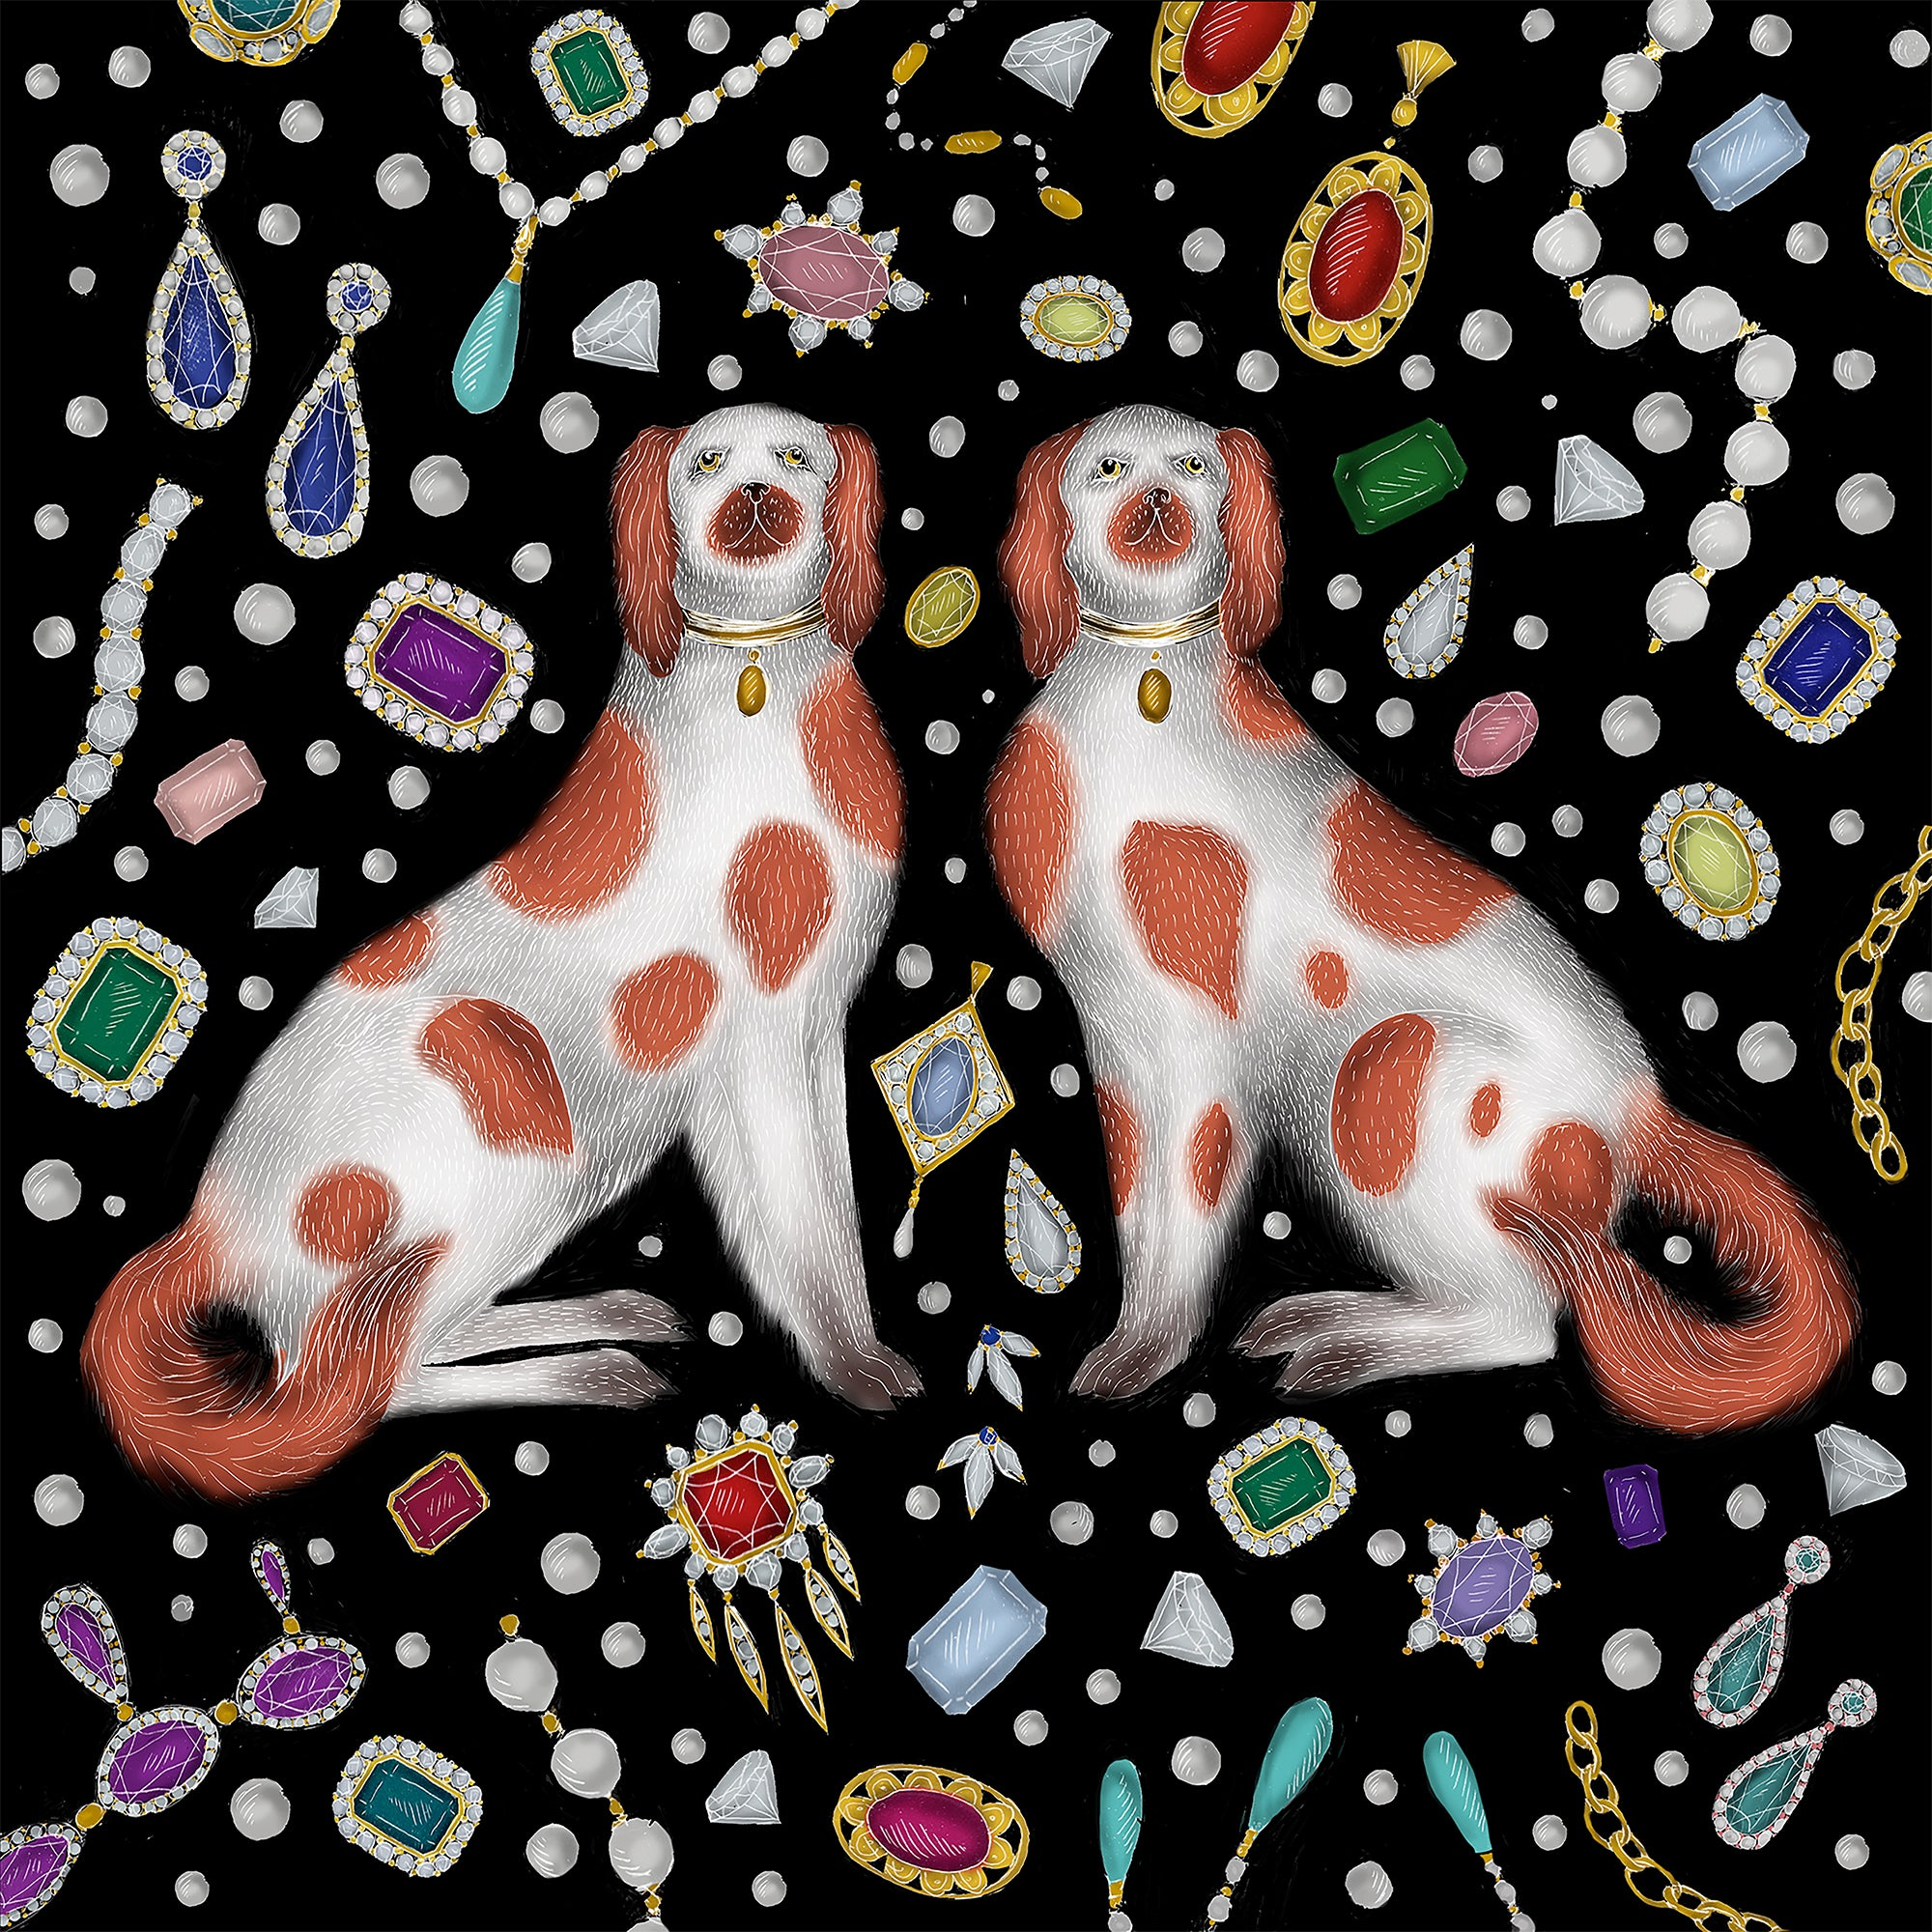 Staffordshire Dogs & Jewels Print